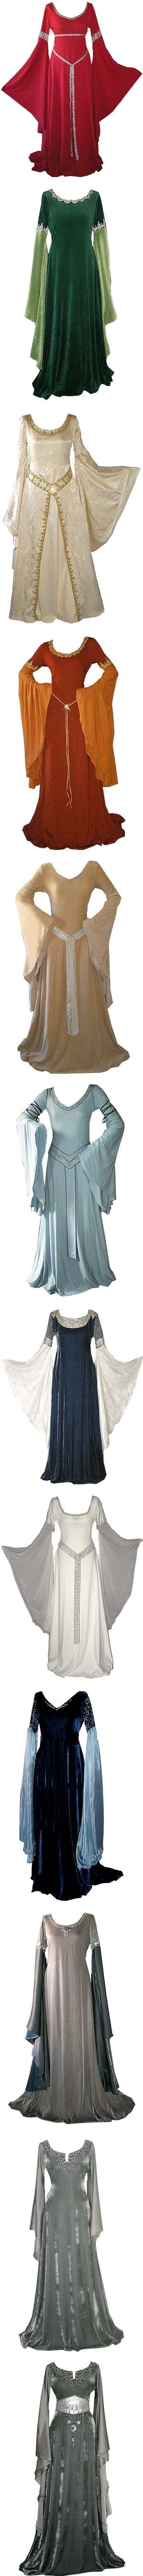 """Medieval Gowns I"" by savagedamsel ❤ liked on ..."